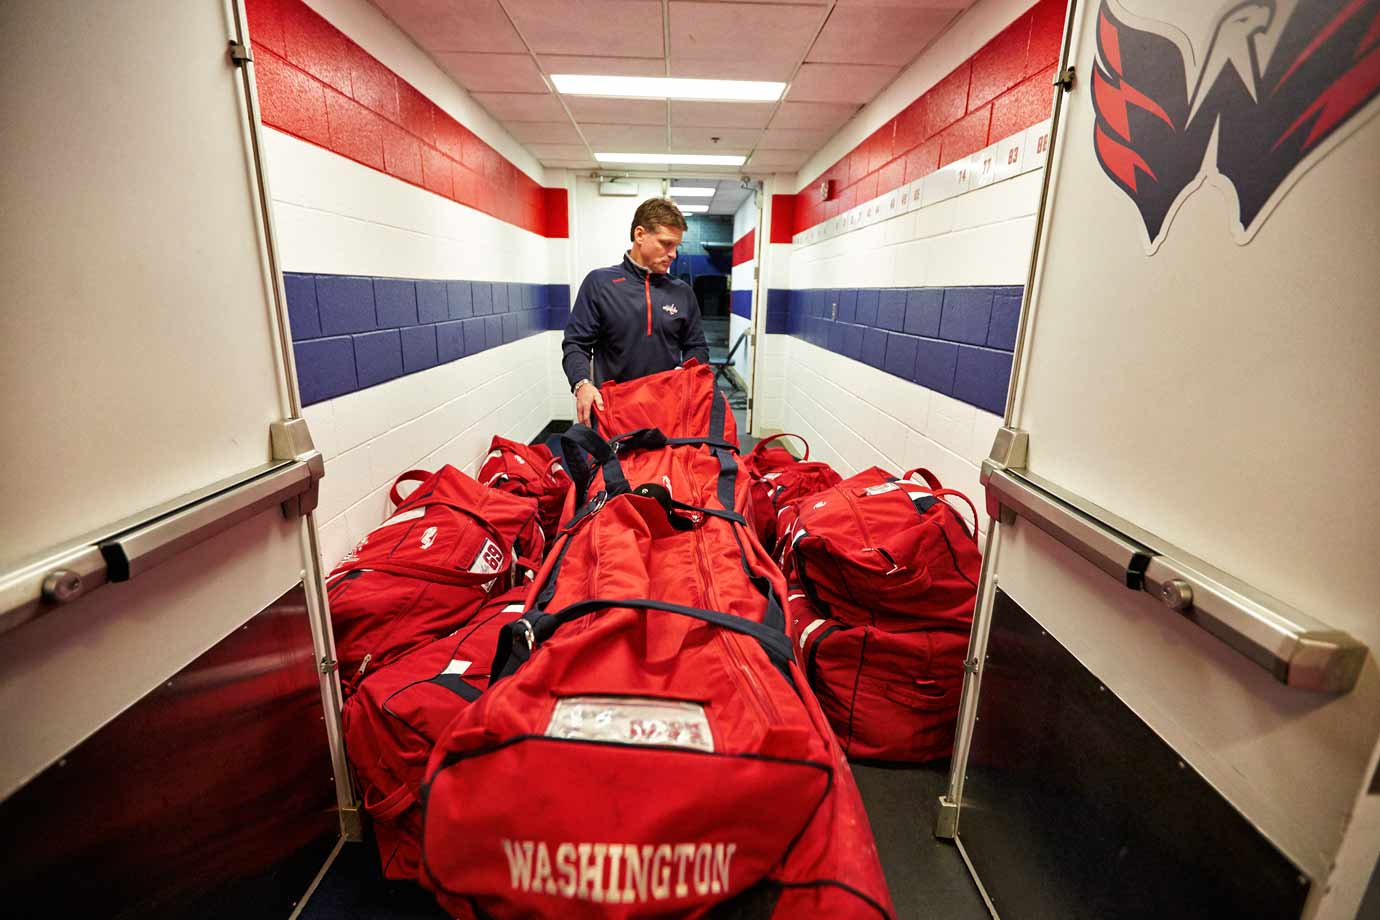 At 7:53 equipment manager Craig Leydig hauls the bags down the hall, out the arena's back exit and to a waiting box truck. In all, 2,770 pounds of gear will make the trip.